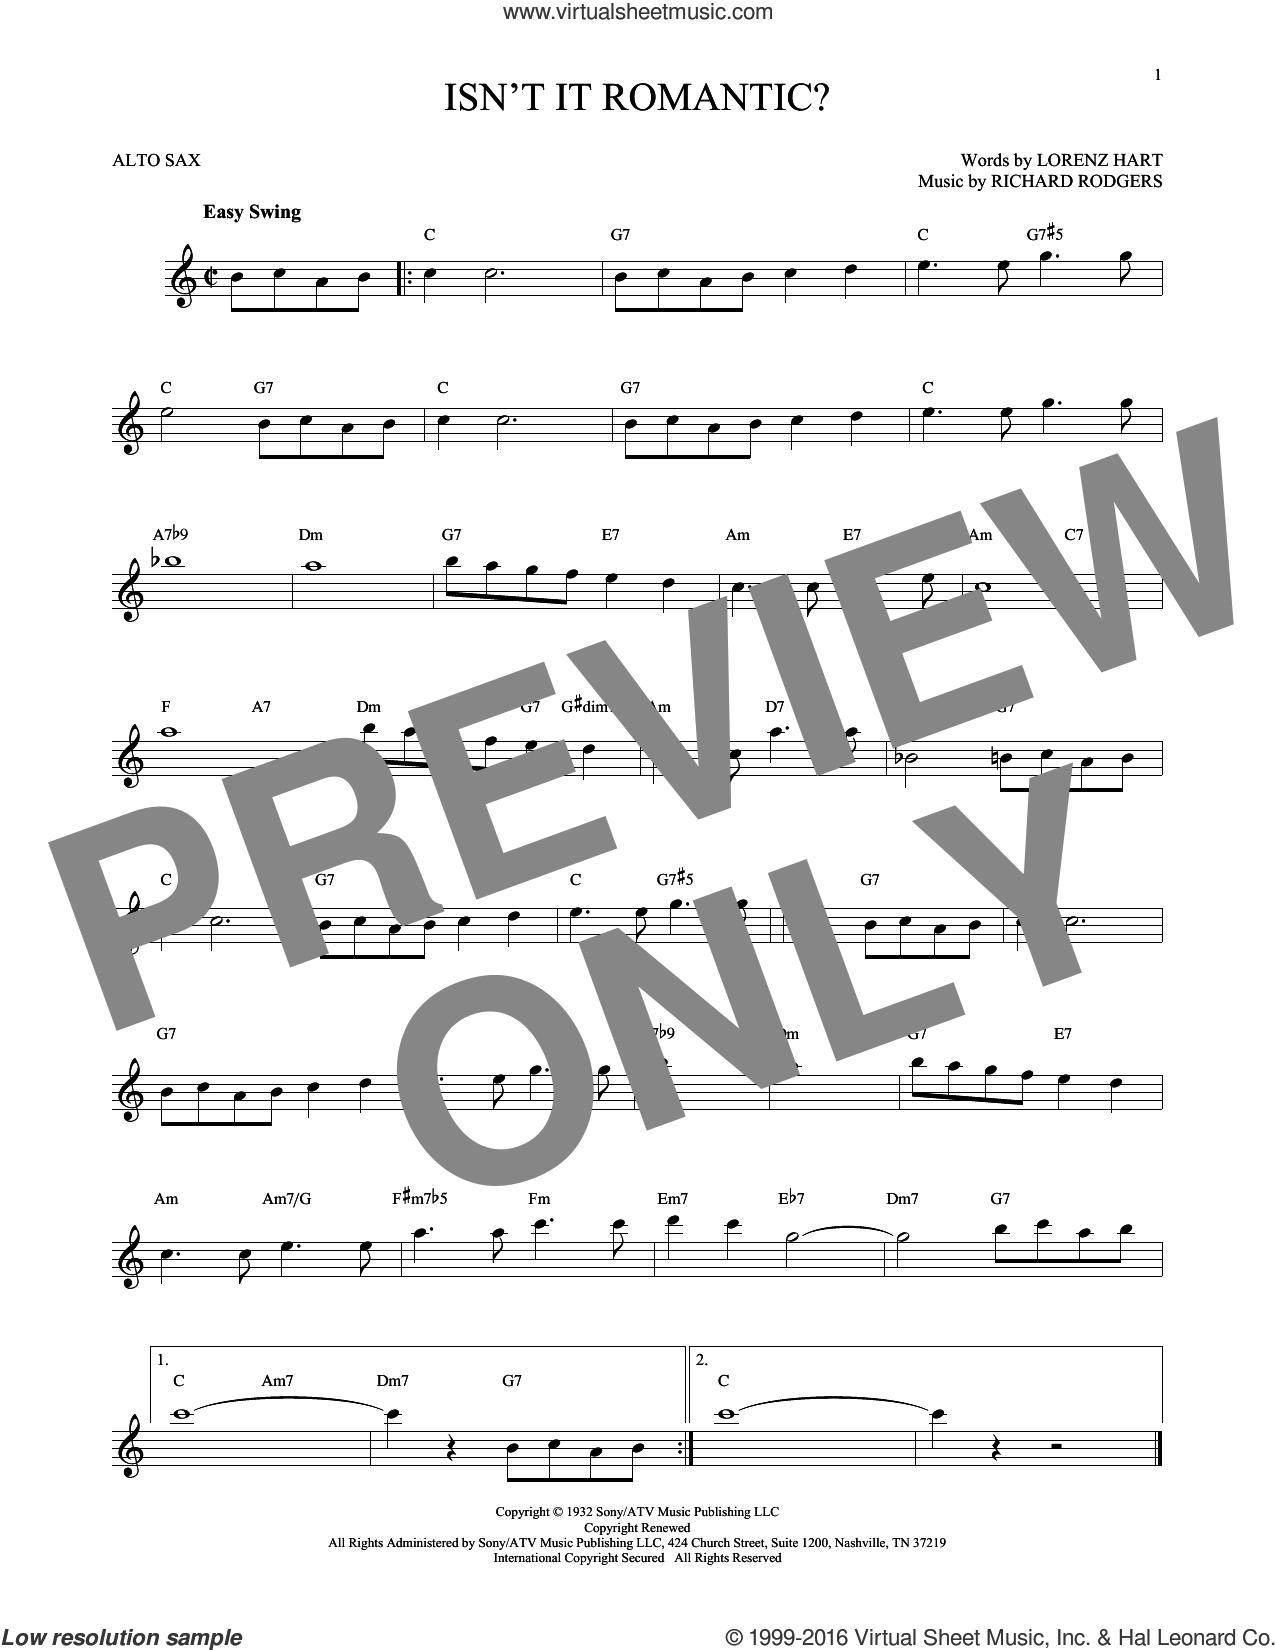 Isn't It Romantic? sheet music for alto saxophone solo by Richard Rodgers